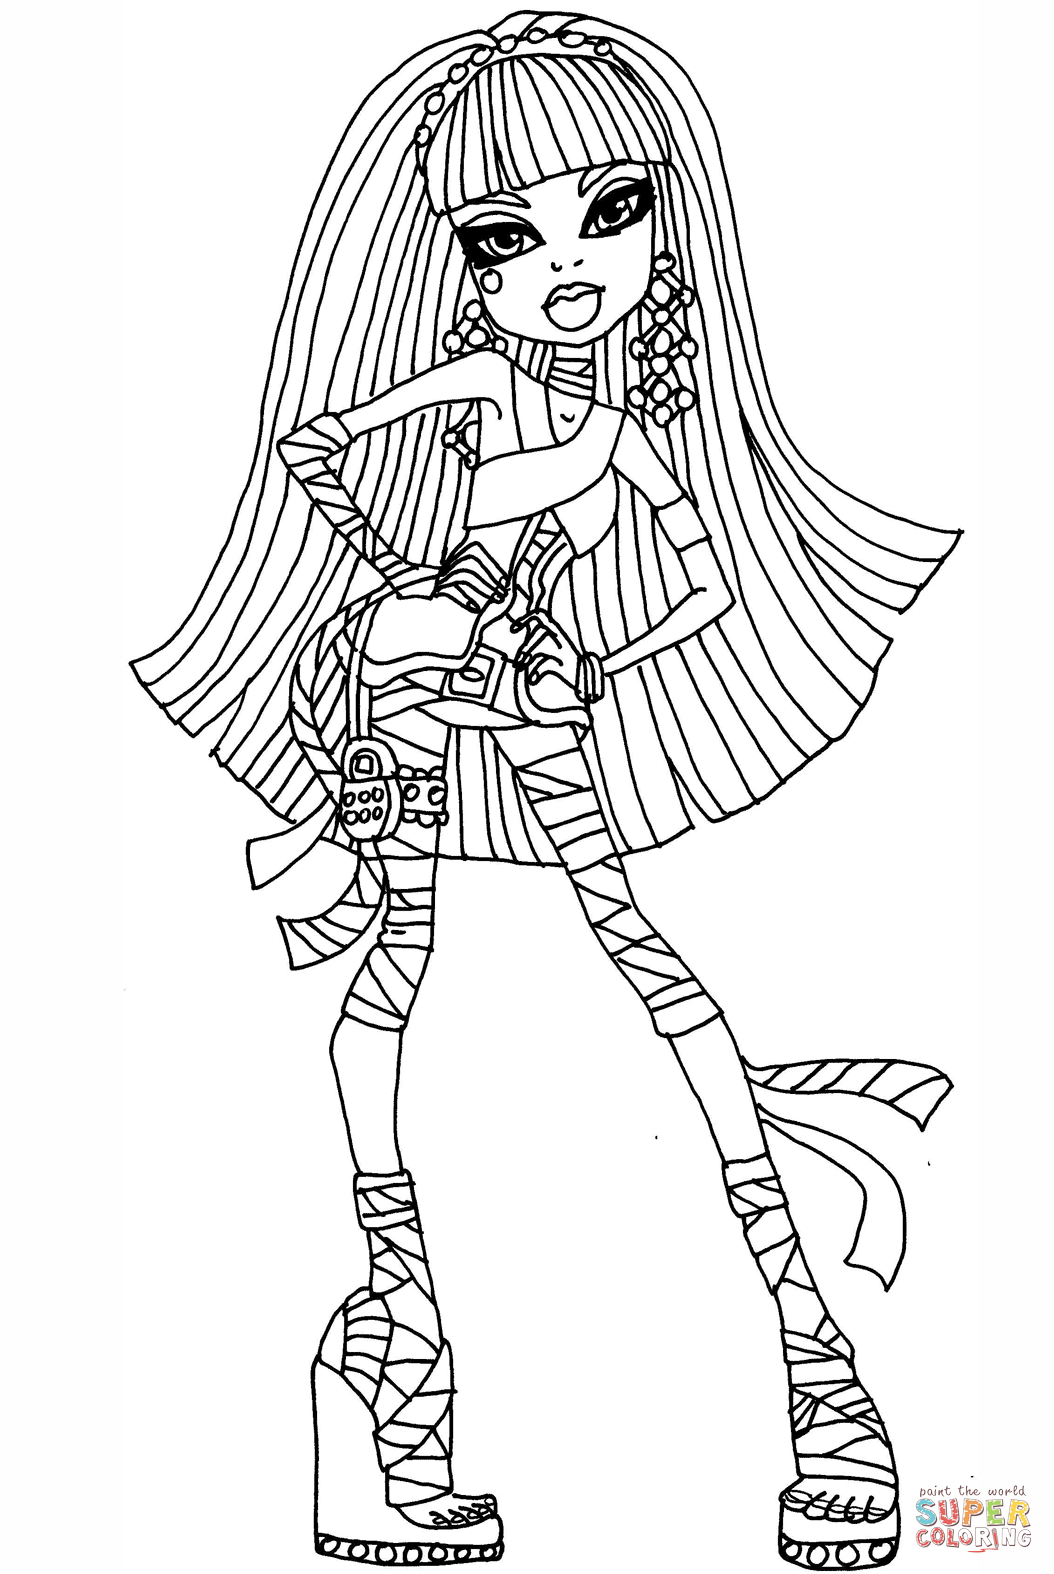 coloring pages monster high värityskuva kids n funcom coloring page monster high monster high girls pages coloring värityskuva monster high